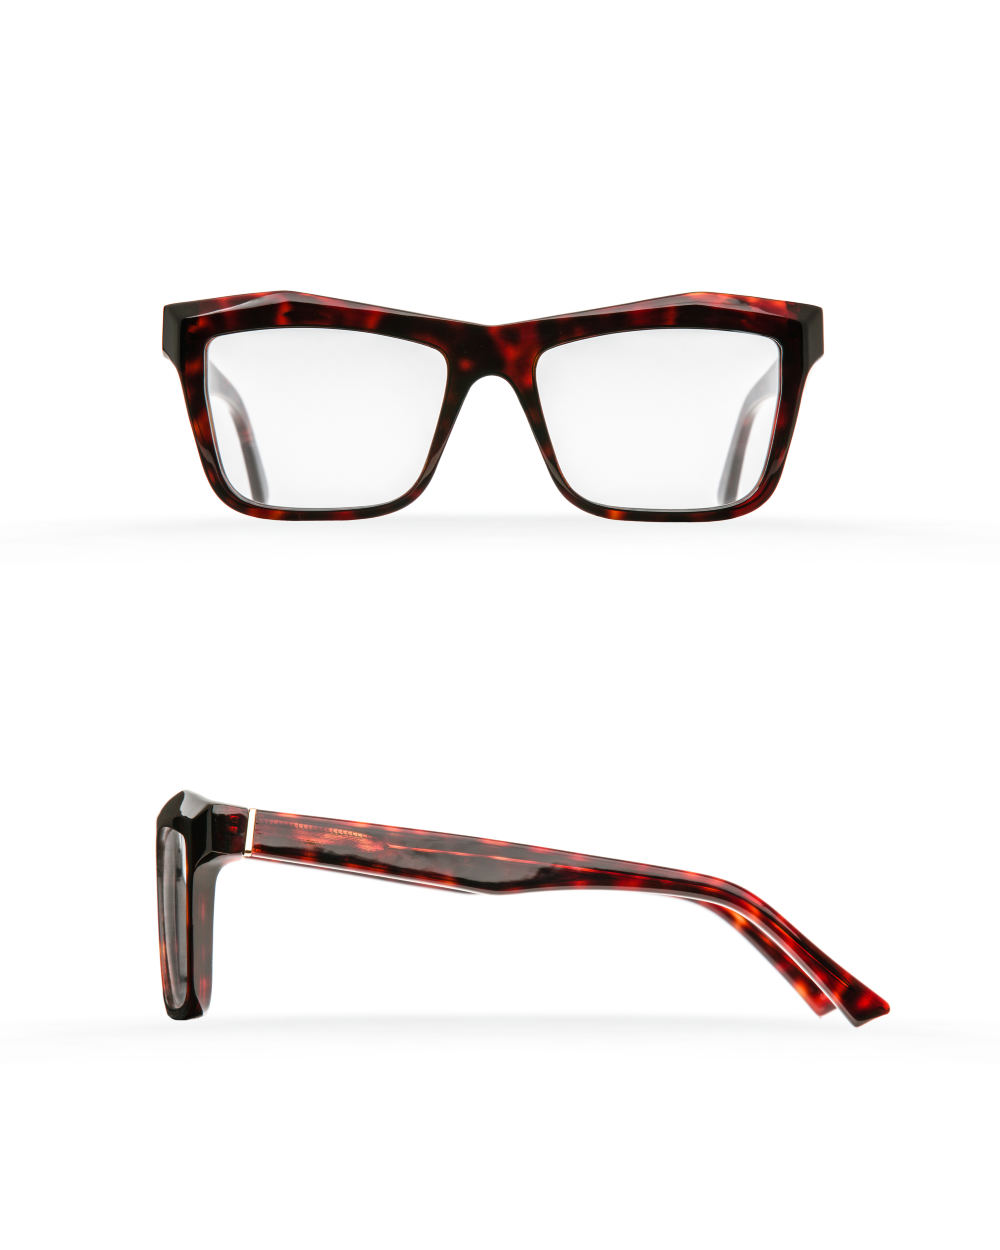 Fakfarer Model 1. Optic. Dark Cherry Havana